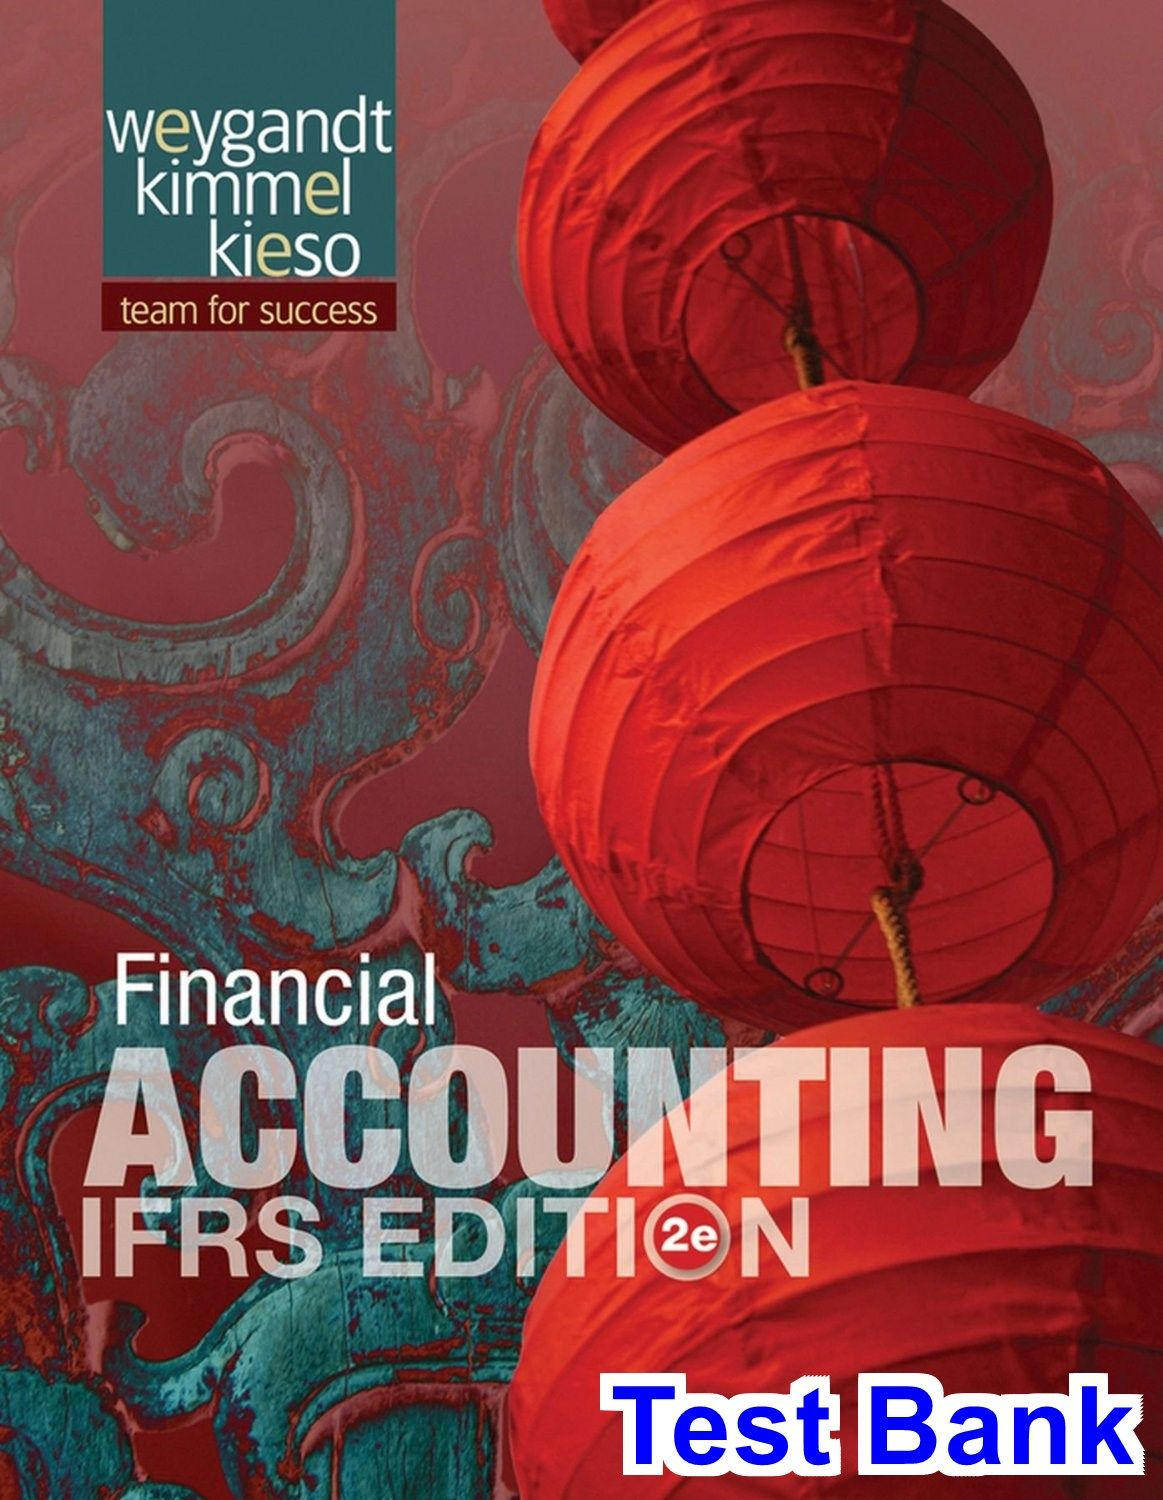 Financial accounting ifrs edition 2nd edition weygandt test bank financial accounting ifrs edition 2nd edition weygandt test bank test bank solutions manual fandeluxe Gallery